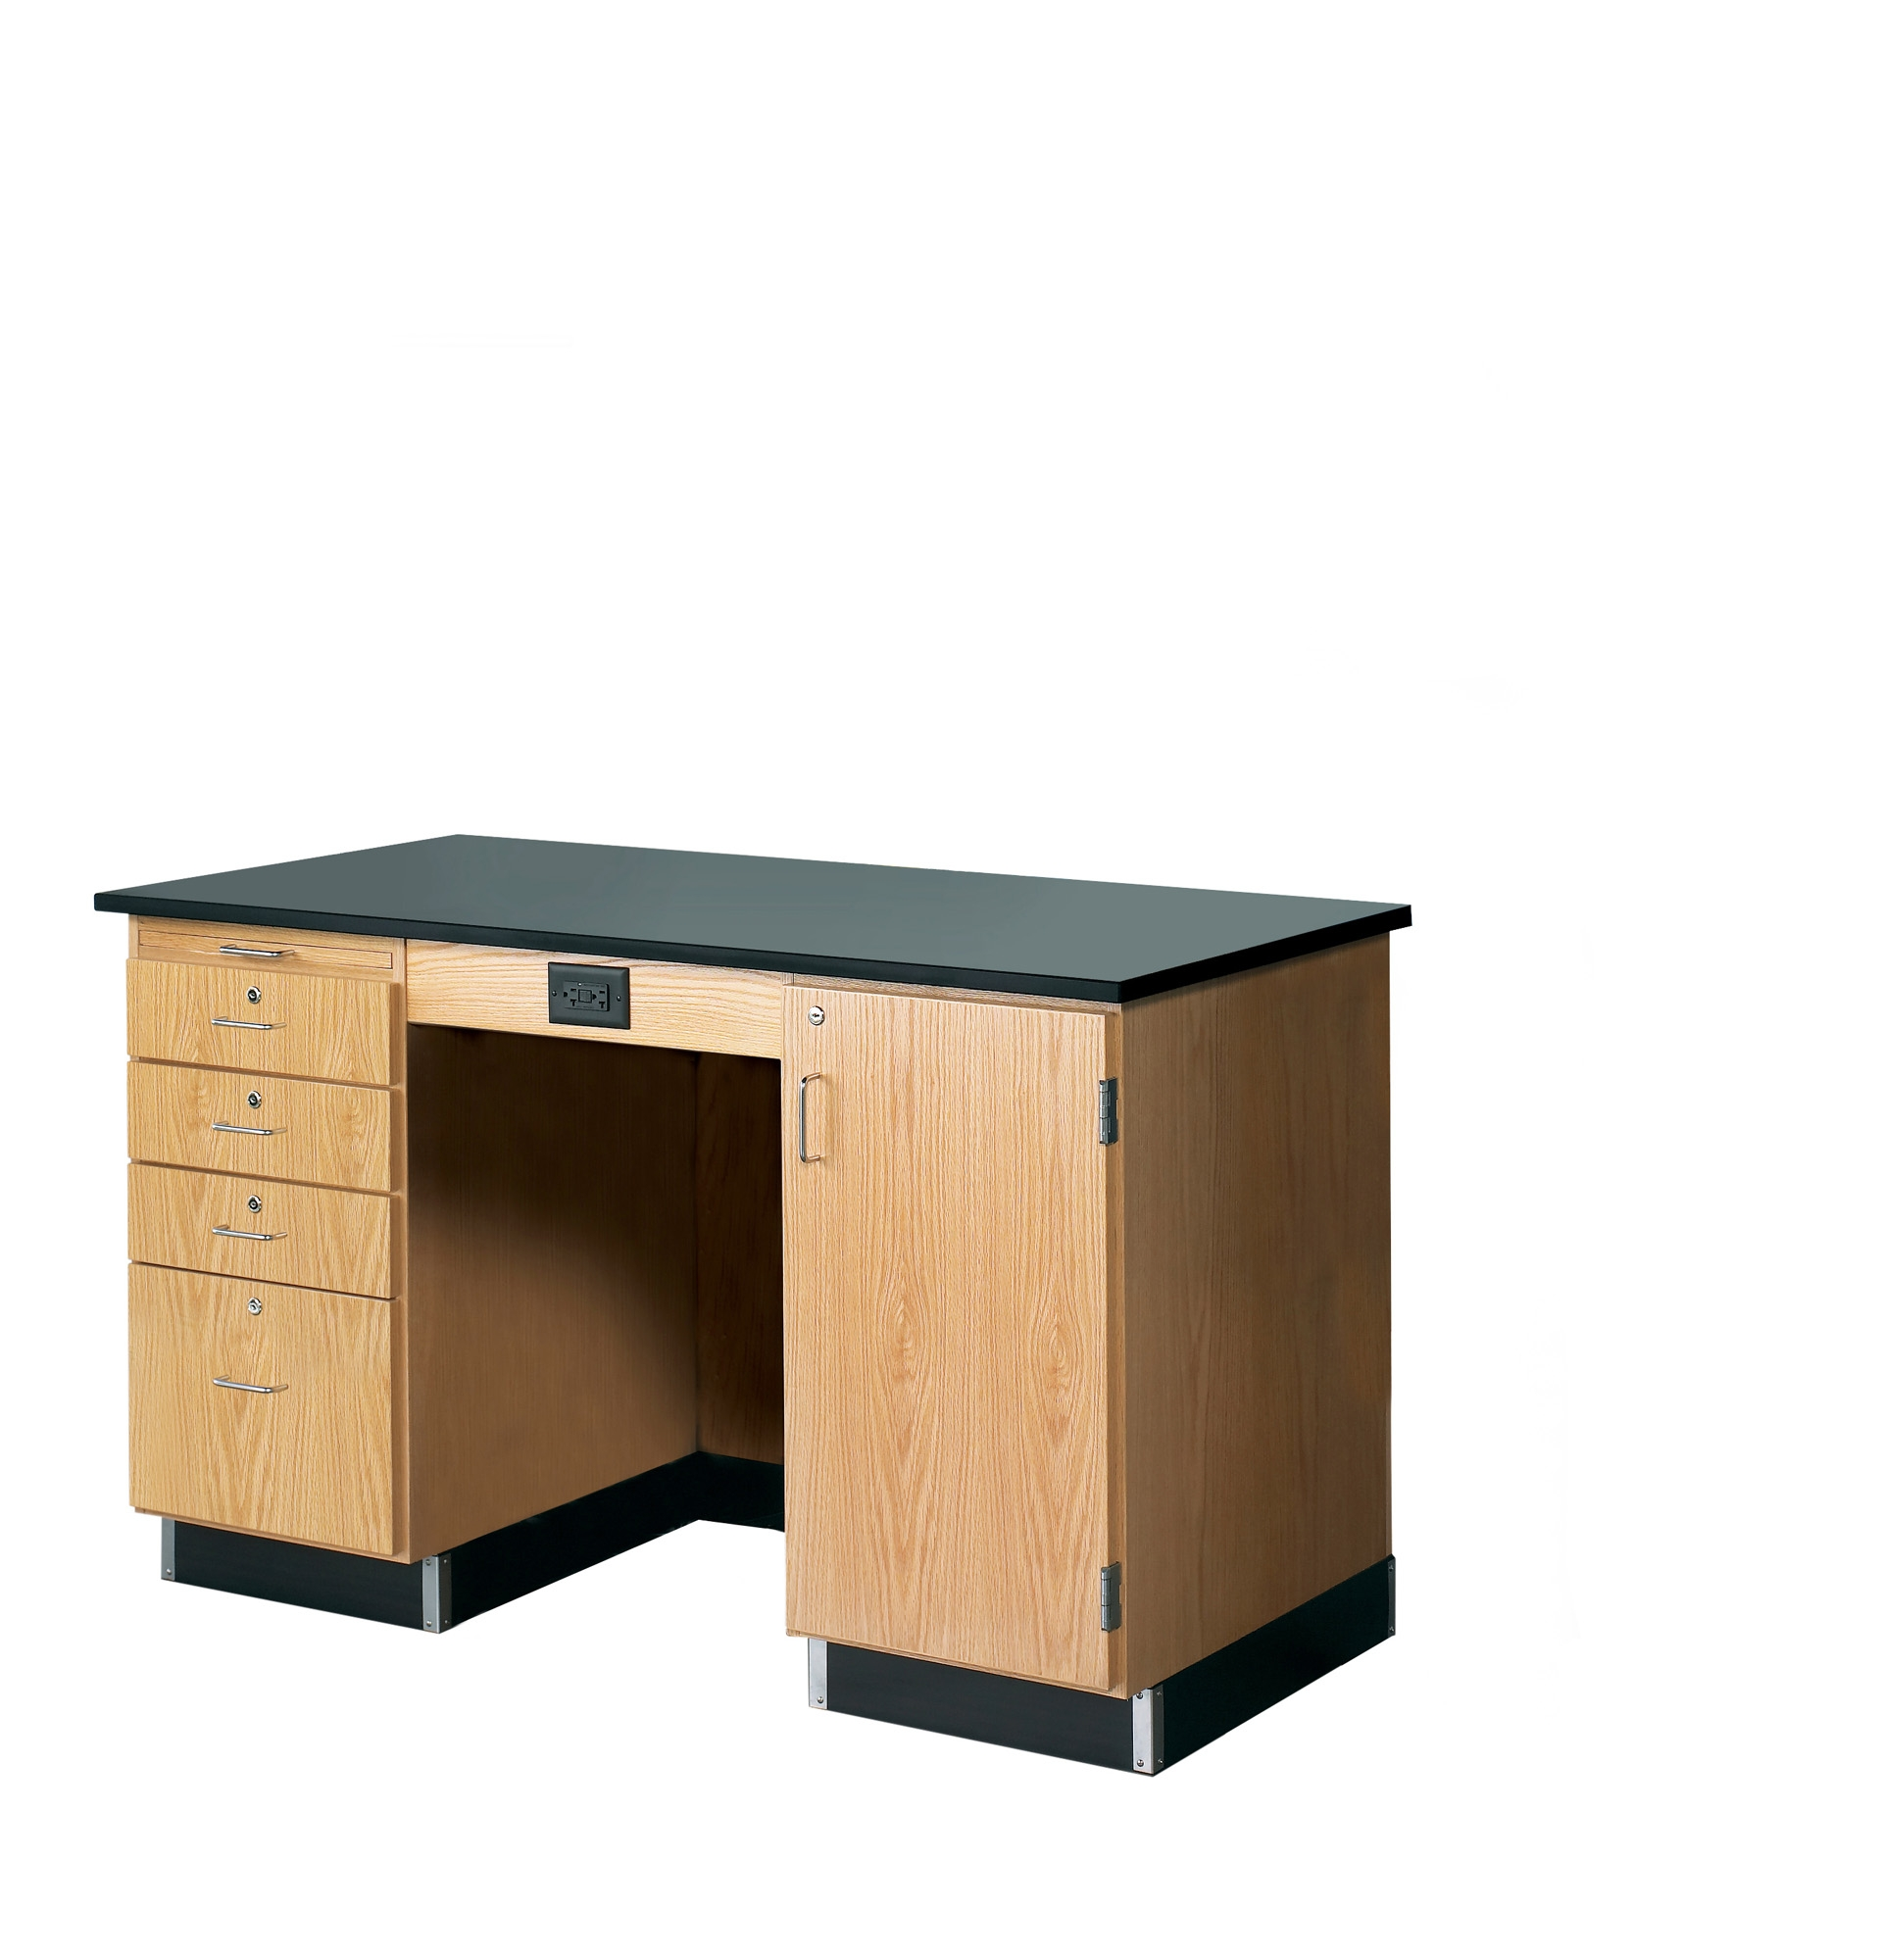 Diversified Woodcrafts 5' Instructor's Desk with Drawers & Cabinet - Phenolic Top